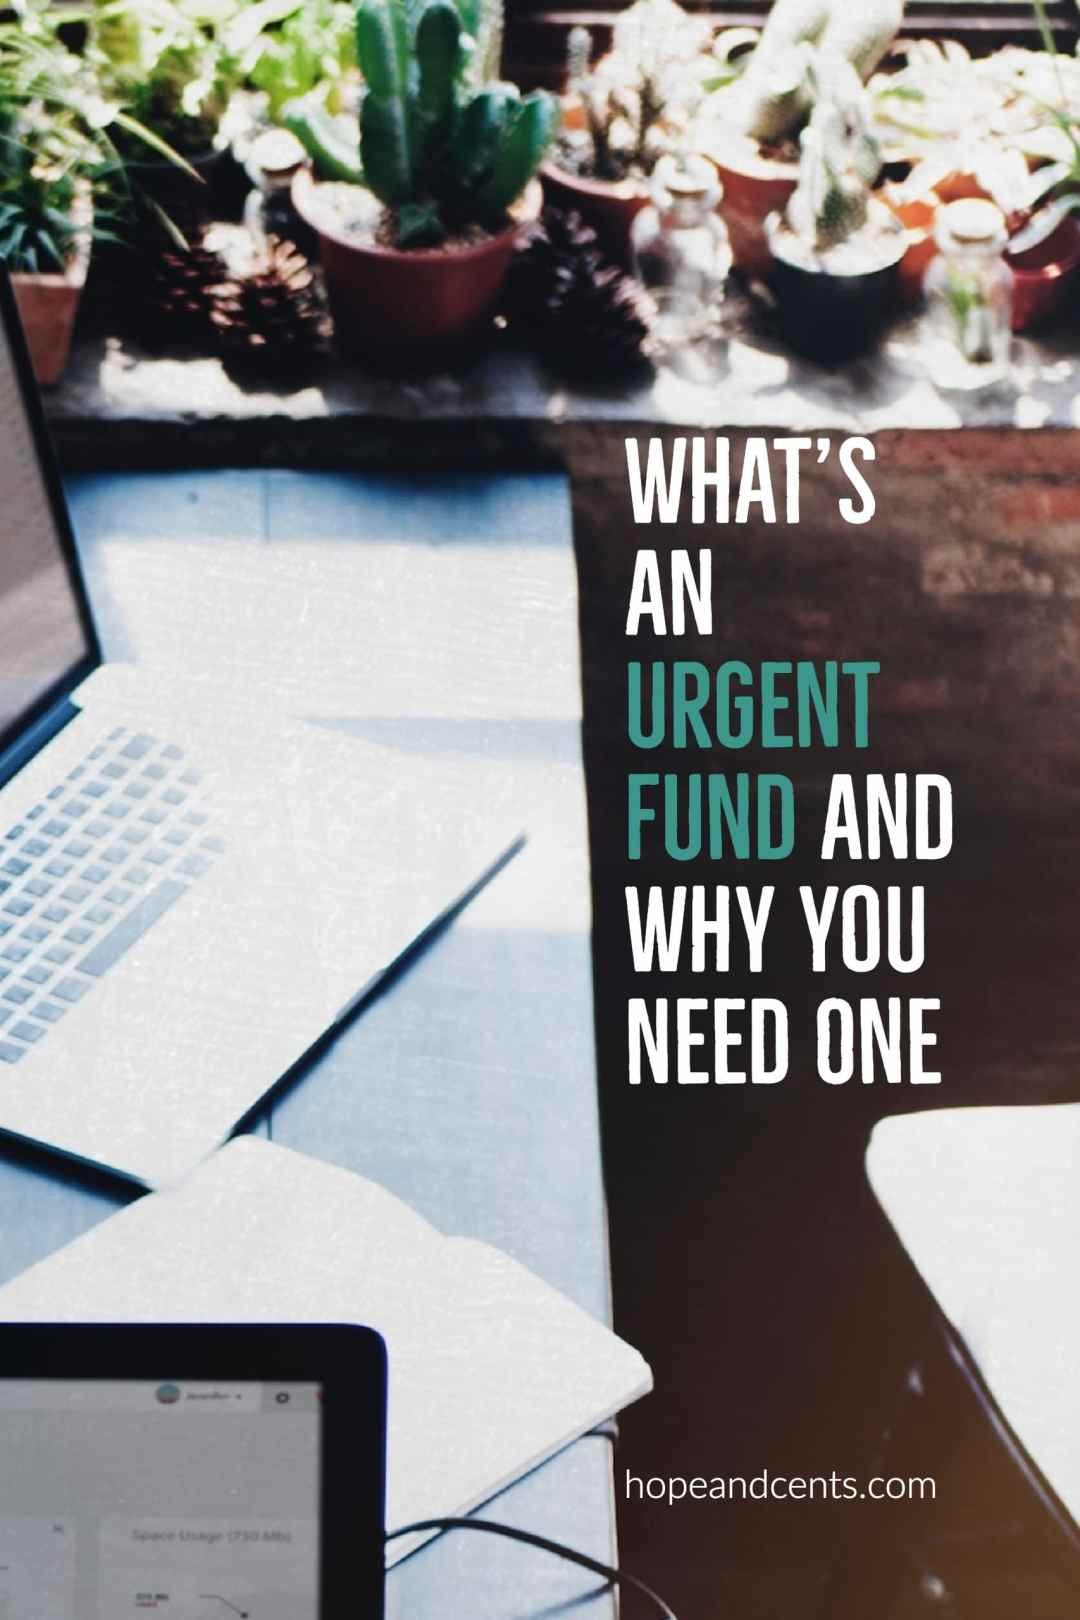 Love this idea! Even with a budget in place, unplanned expenses pop up. With an urgent fund, you won't have to dip into your emergency fund to cover expenses that aren't emergencies,